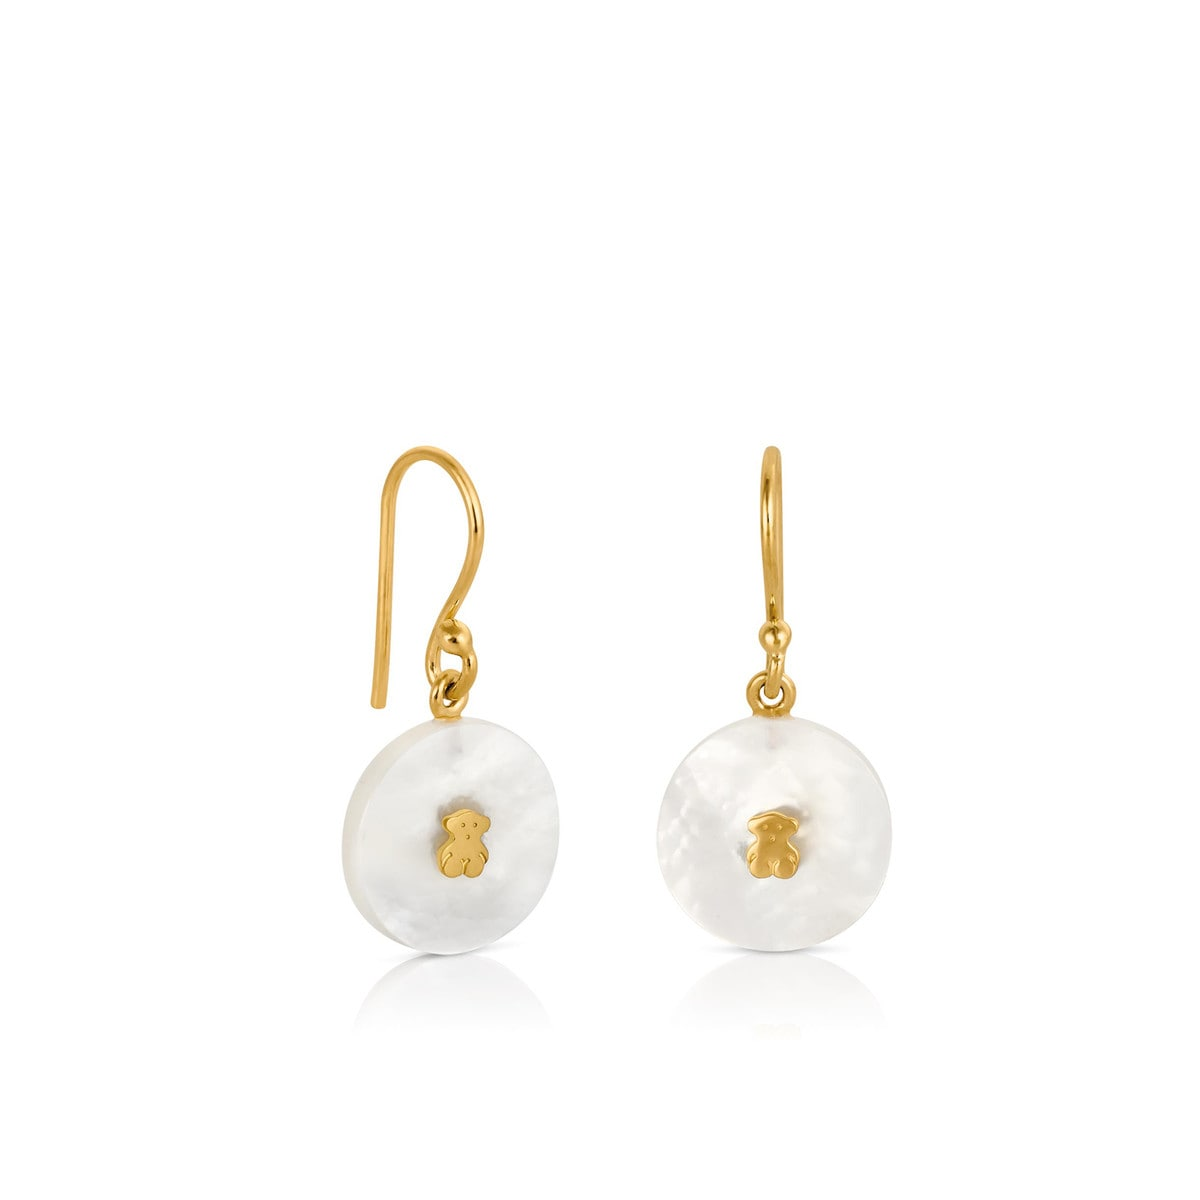 Gold Yuan Earrings with Mother of Pearl